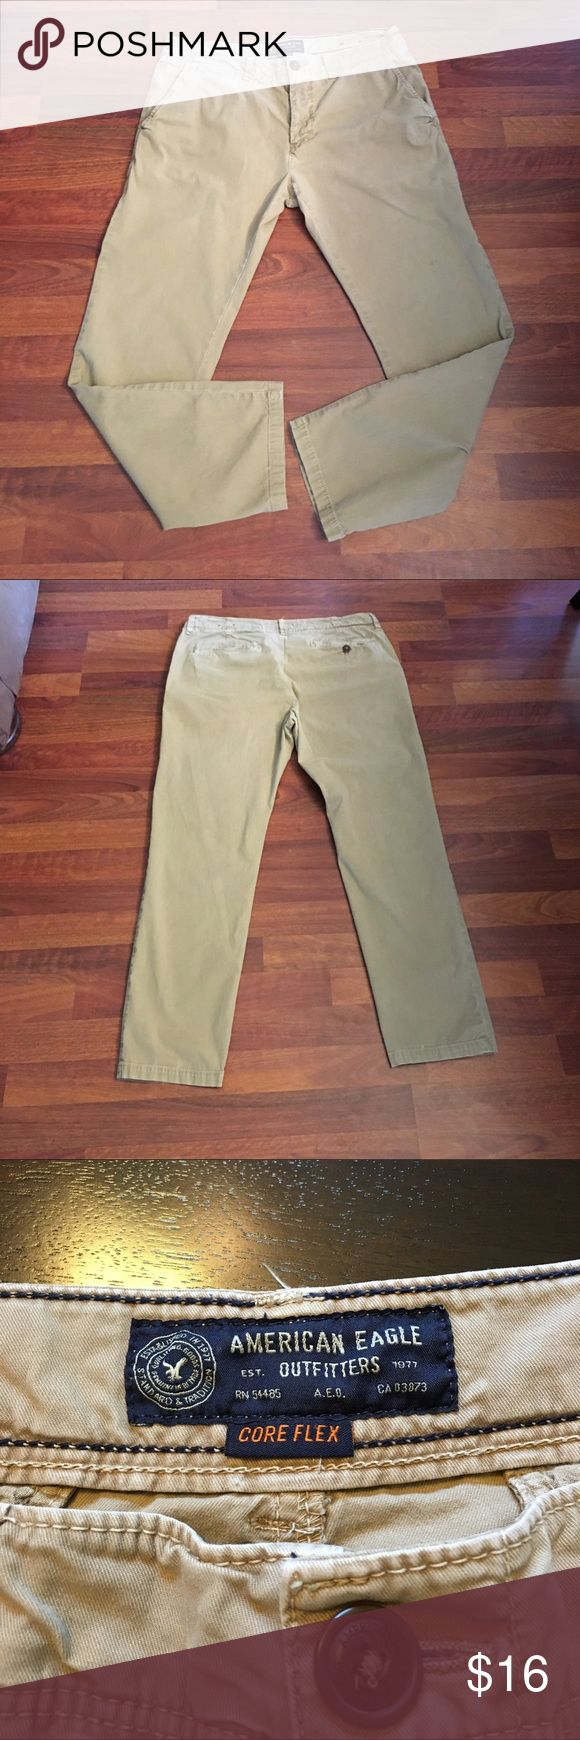 American Eagle Outfitters Men's khaki pants 💥American Eagle outfitters khaki men's  pants. In great shape. No holes or stains. Size 36/32.  Pants have never been dried. Great pants. Thanks for looking in my closet💋 American Eagle Outfitters Pants Cargo